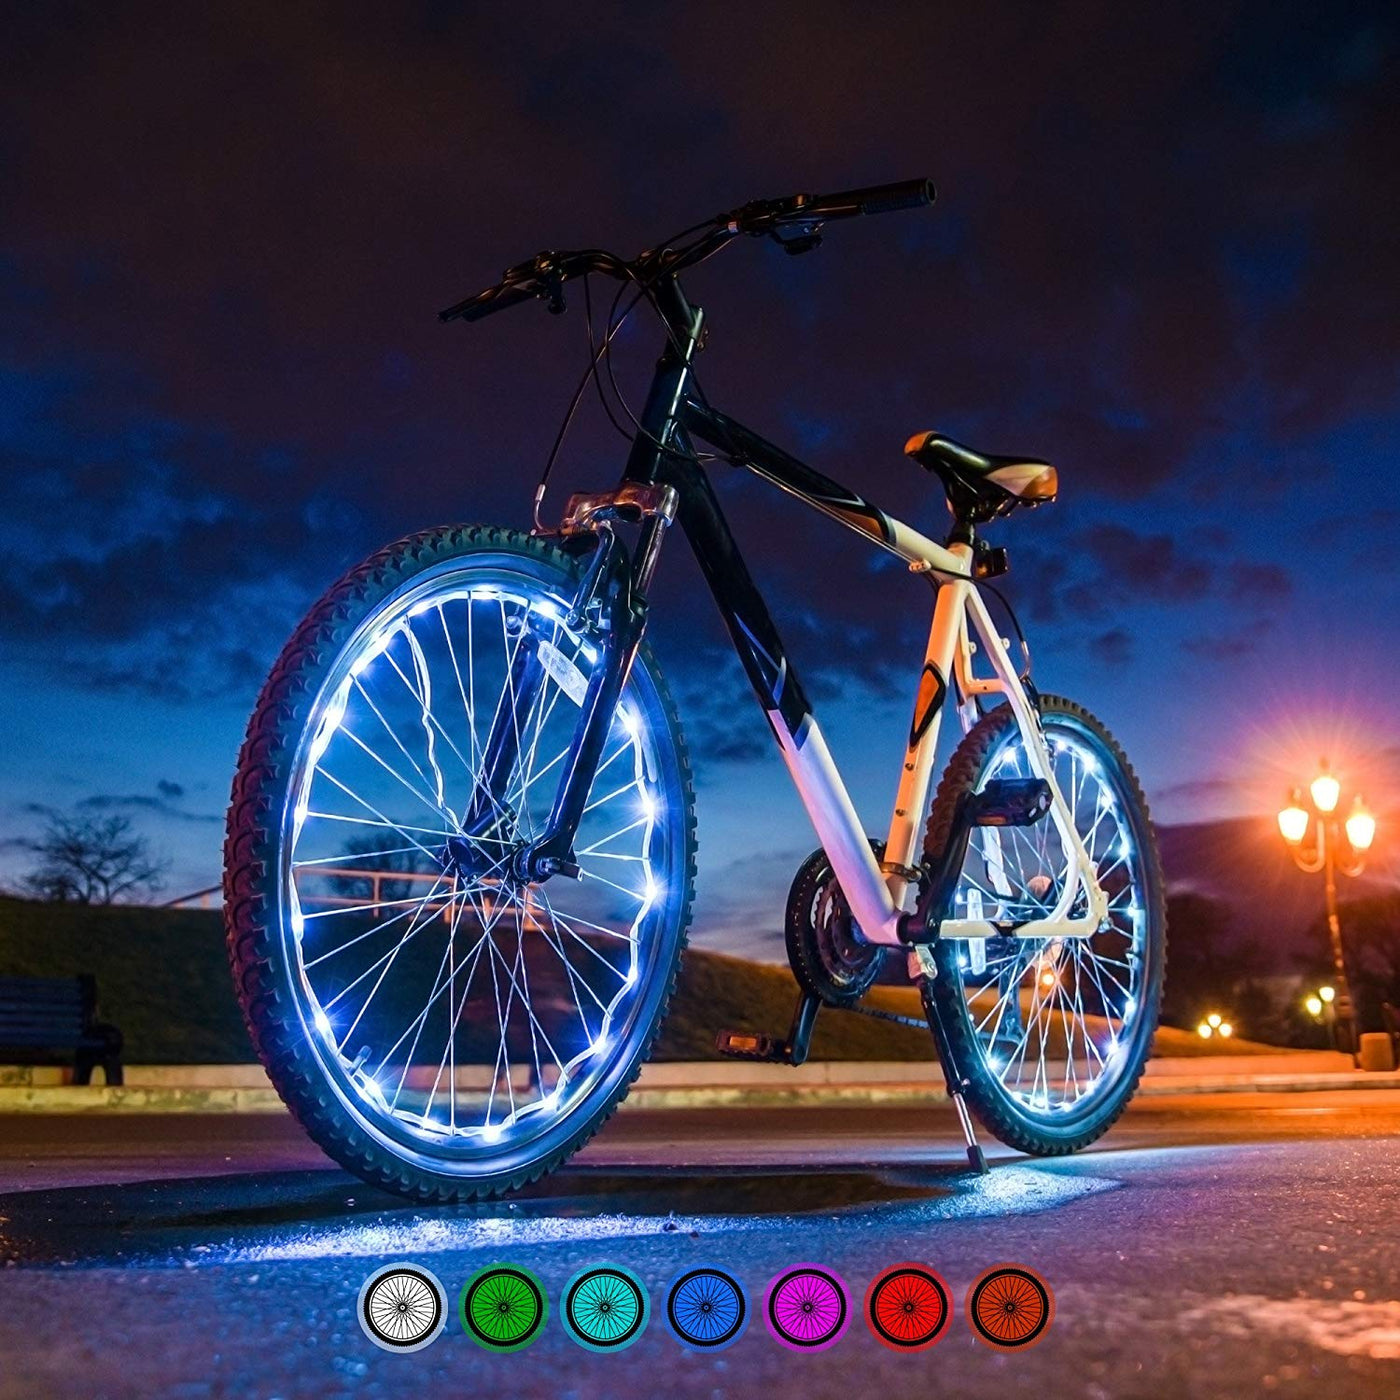 7 Colors in 1 Bright Spokes Premium LED Bike Wheel Lights USB Rechargeable